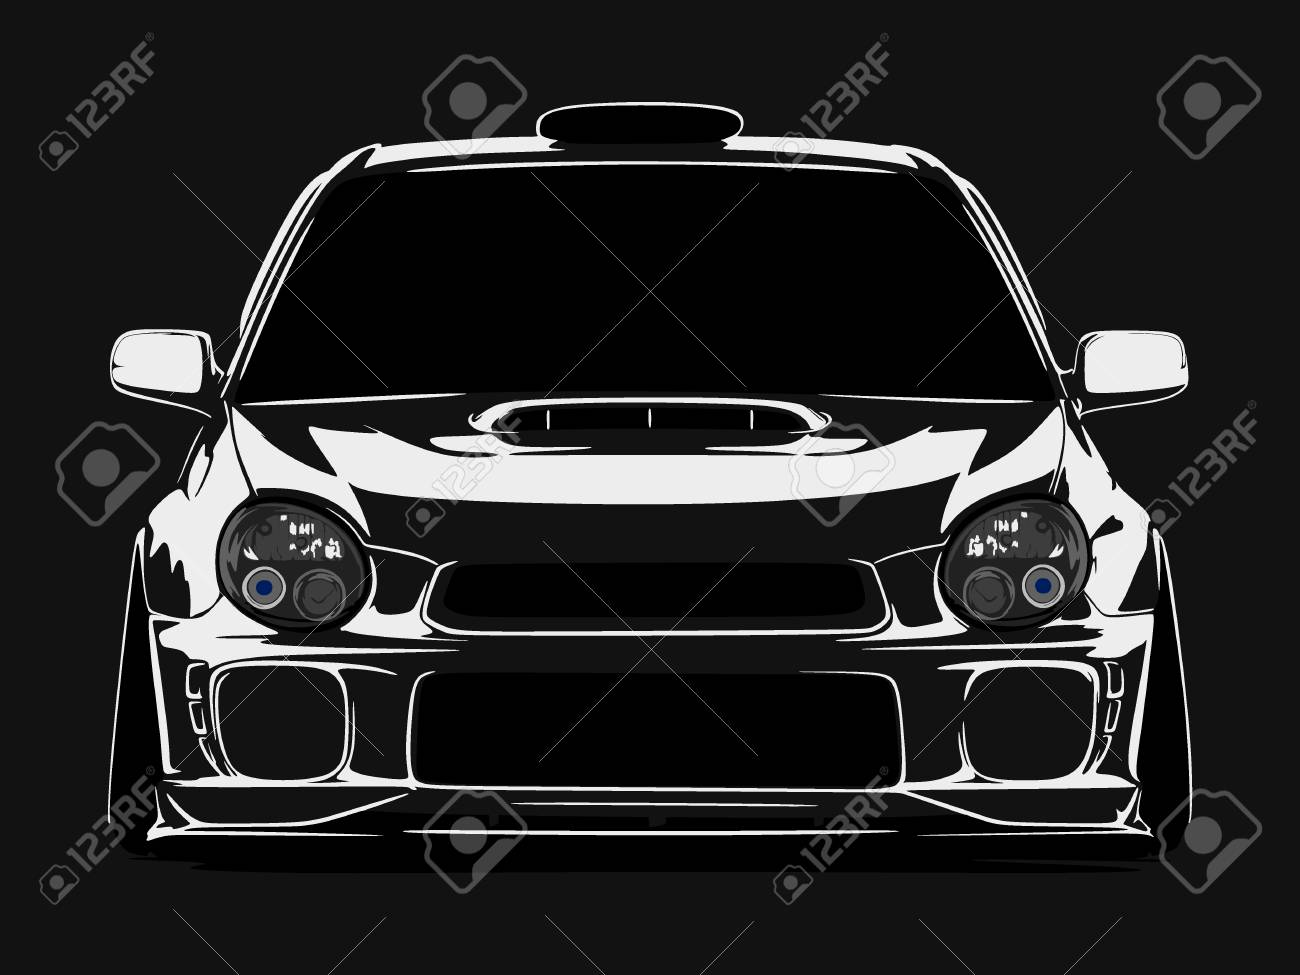 cool car vector illlustration silhouette isolated in flat black background - 109658228